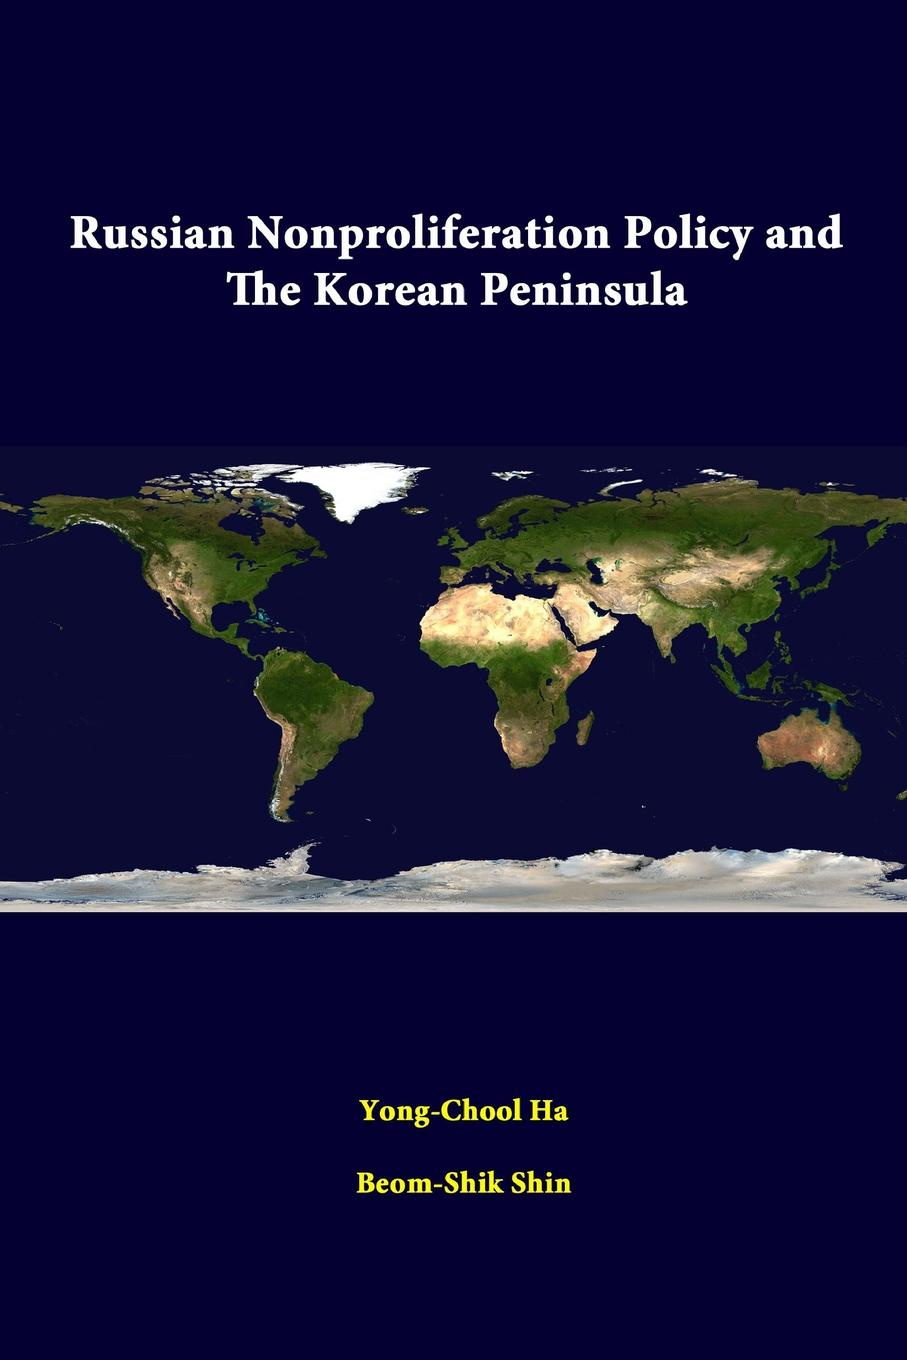 Yong-Chool Ha, Beom-Shik Shin, Strategic Studies Institute Russian Nonproliferation Policy And The Korean Peninsula strategic studies institute samuel s investigation north korean foreign relations in the post cold war world